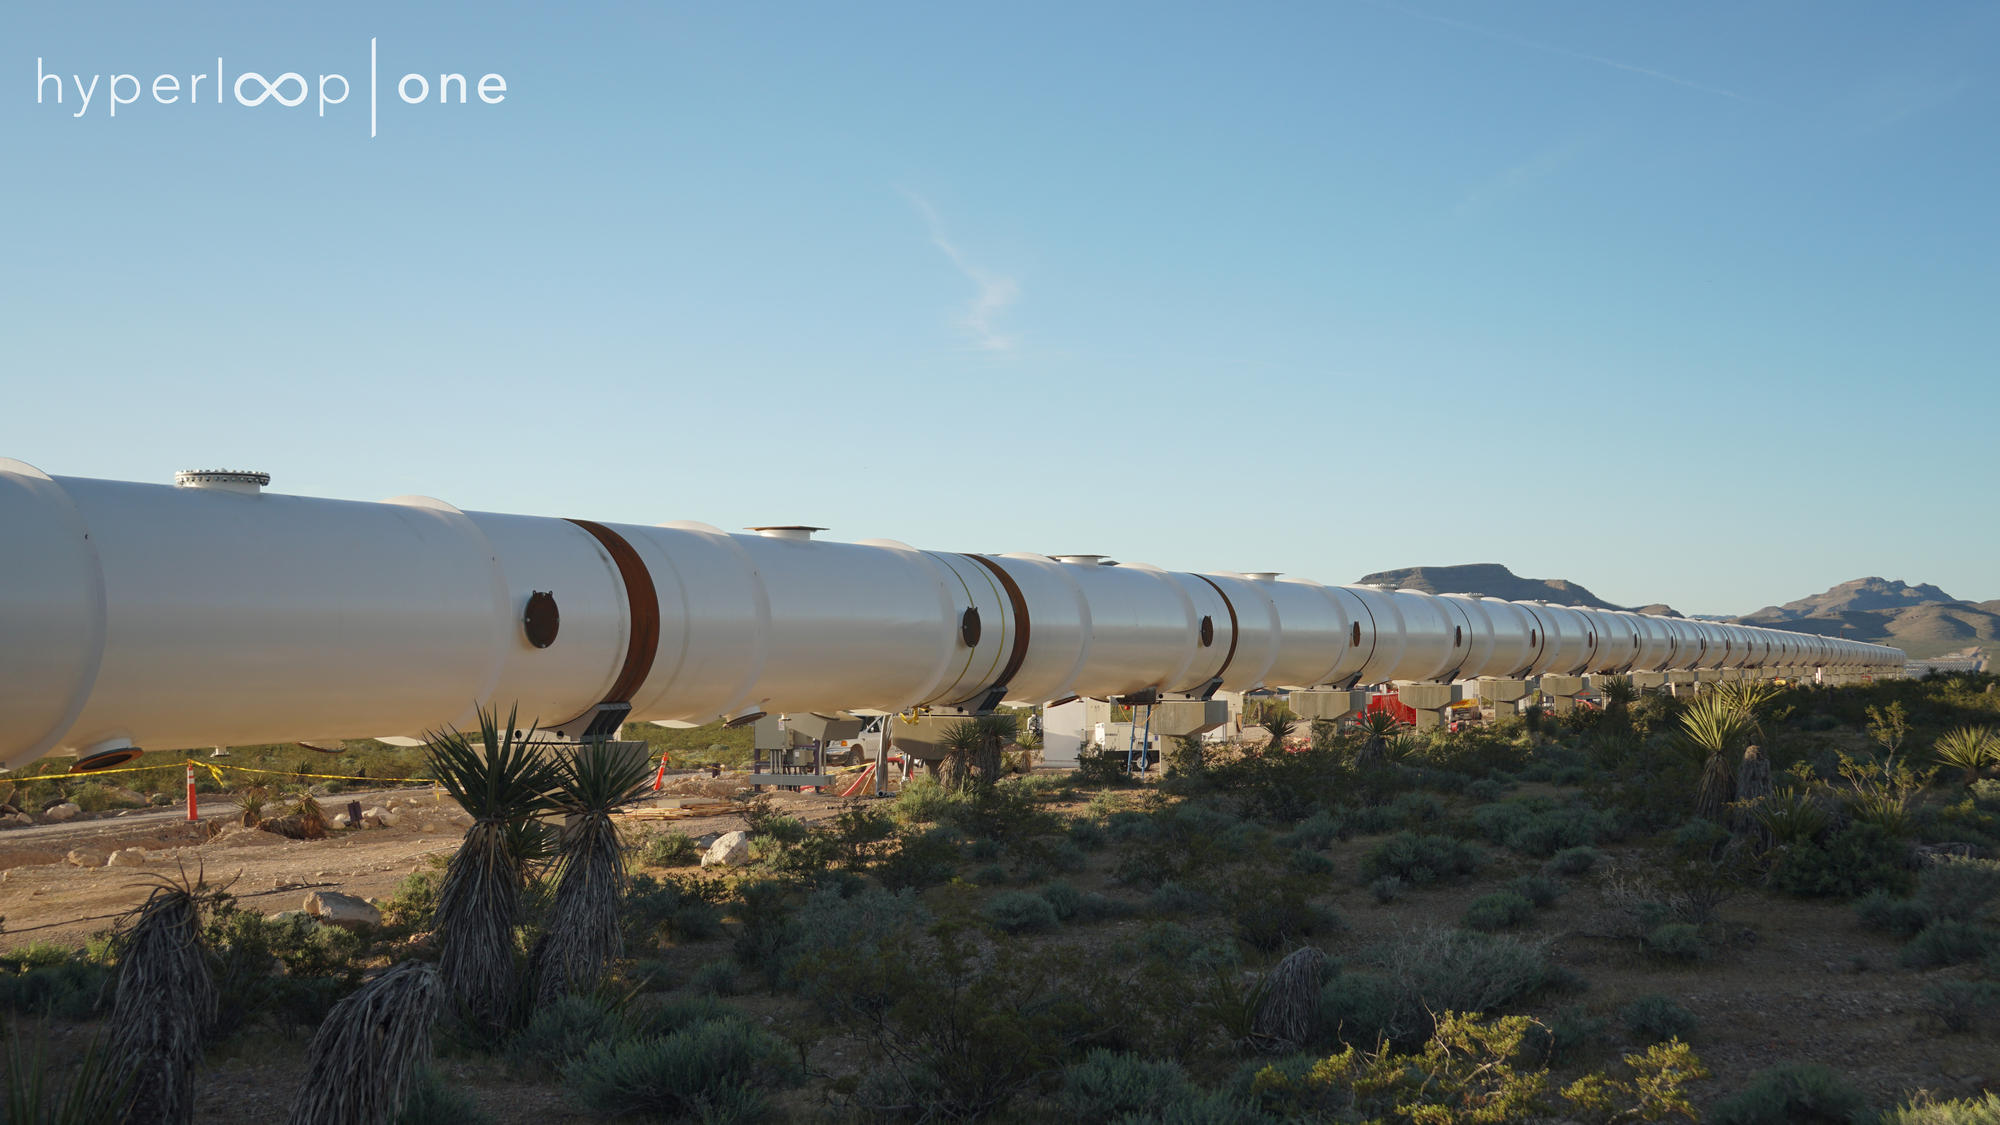 Hyperloop One finished tube installation at DevLoop looking south